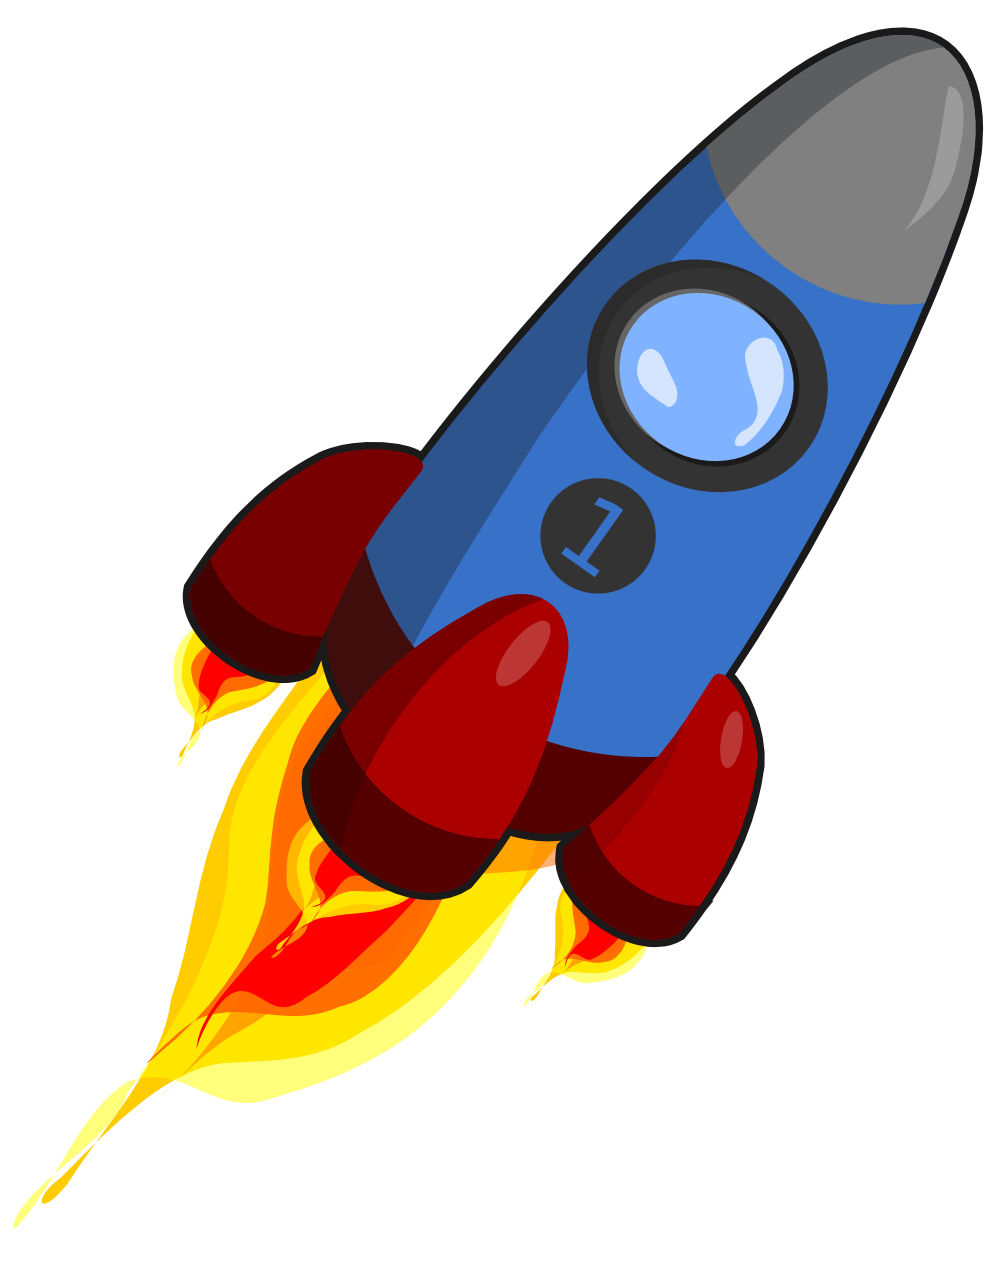 Rocket clipart Clip 3 art outline Rocket